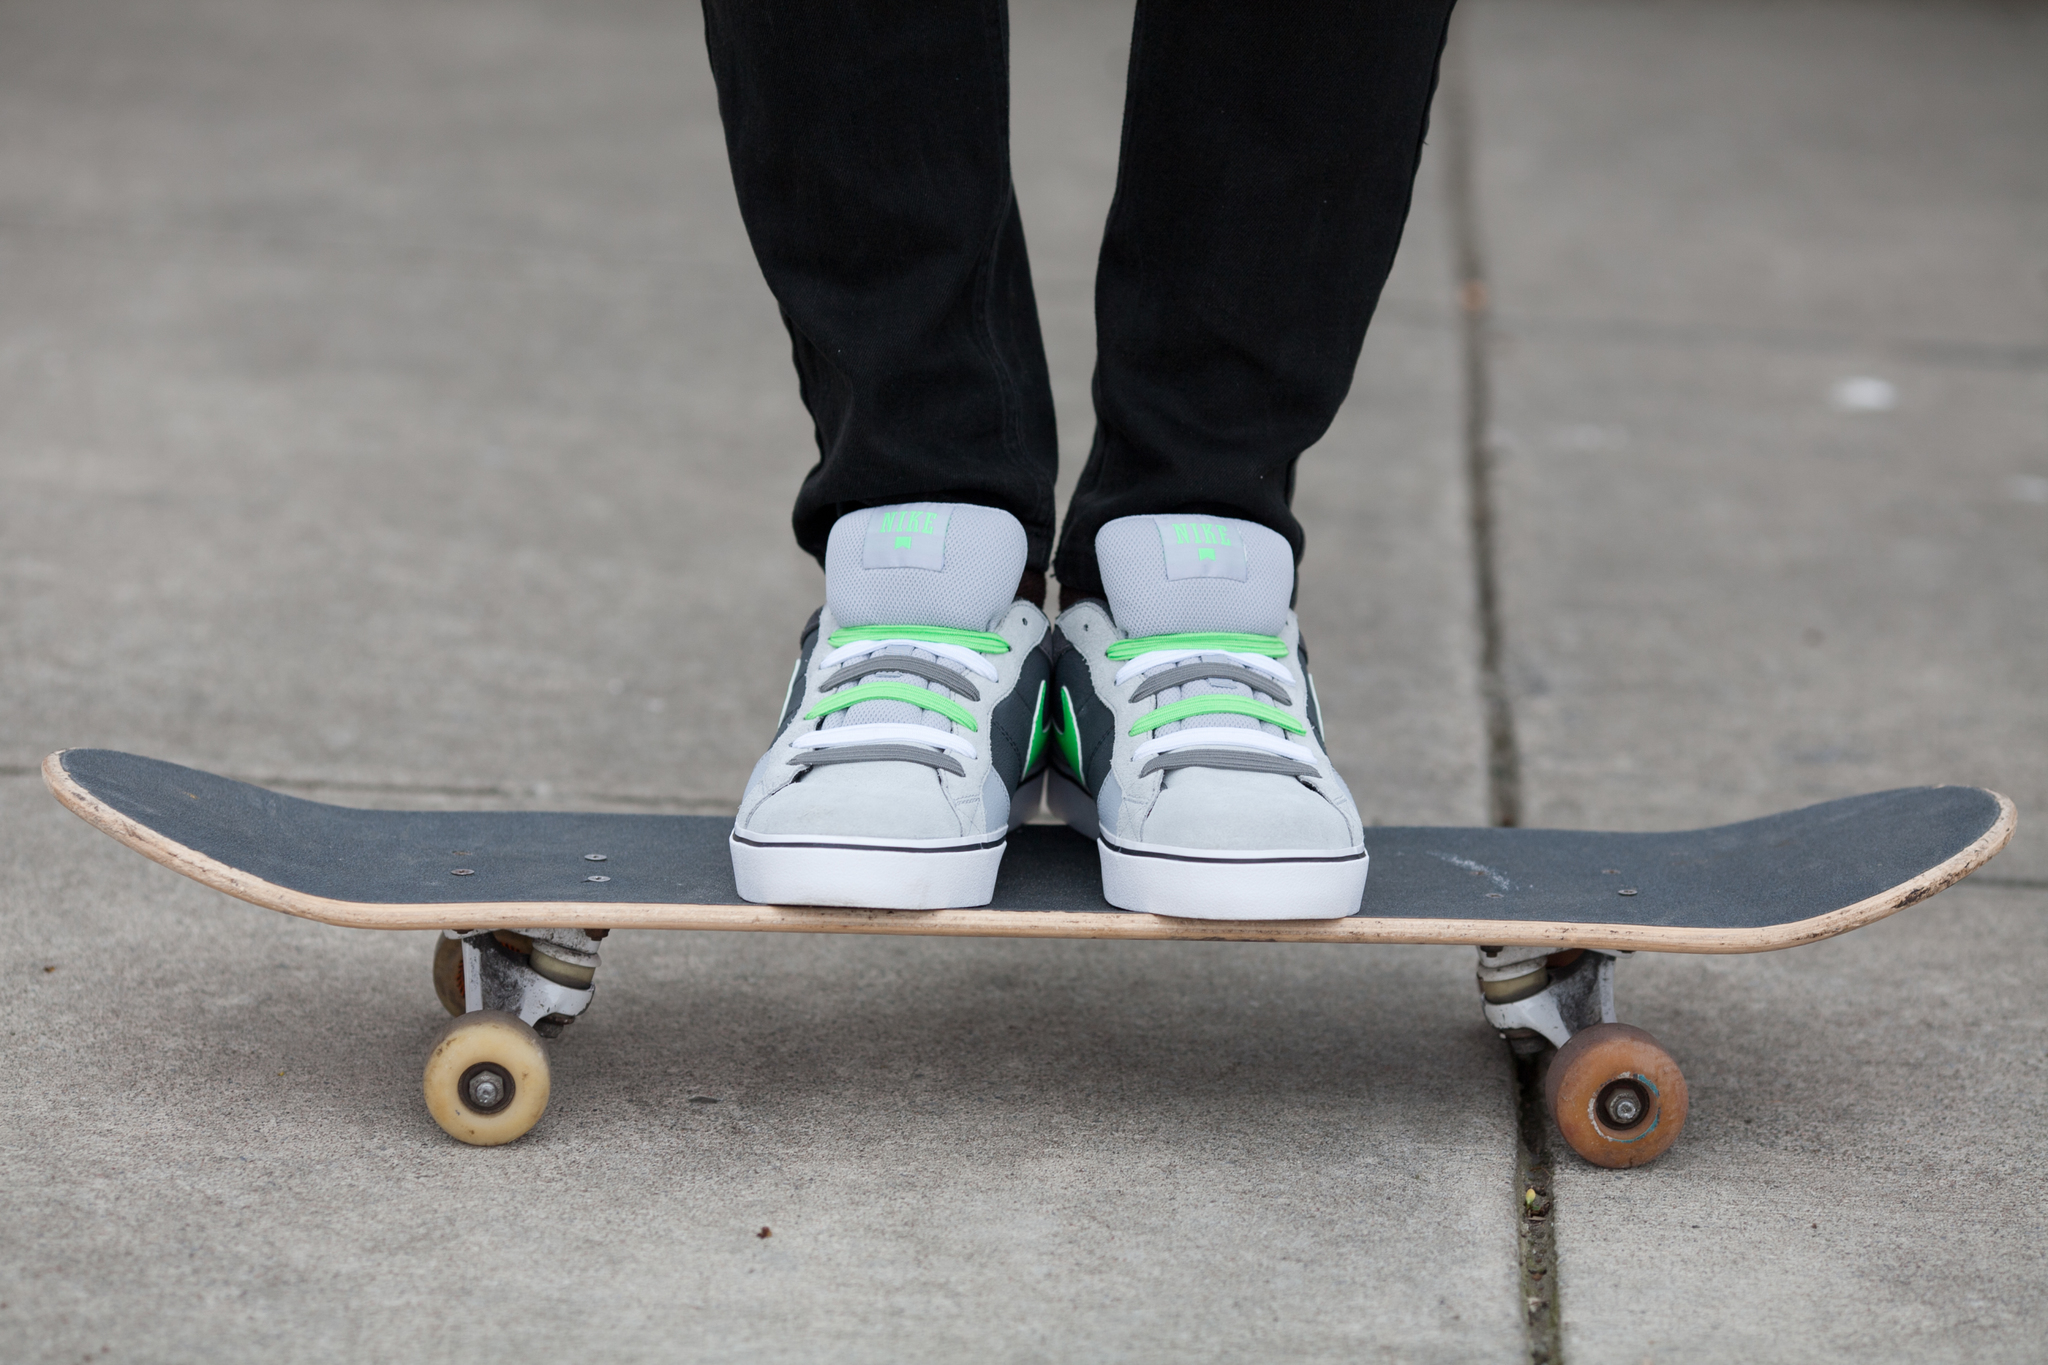 Grey shoes on skateboard